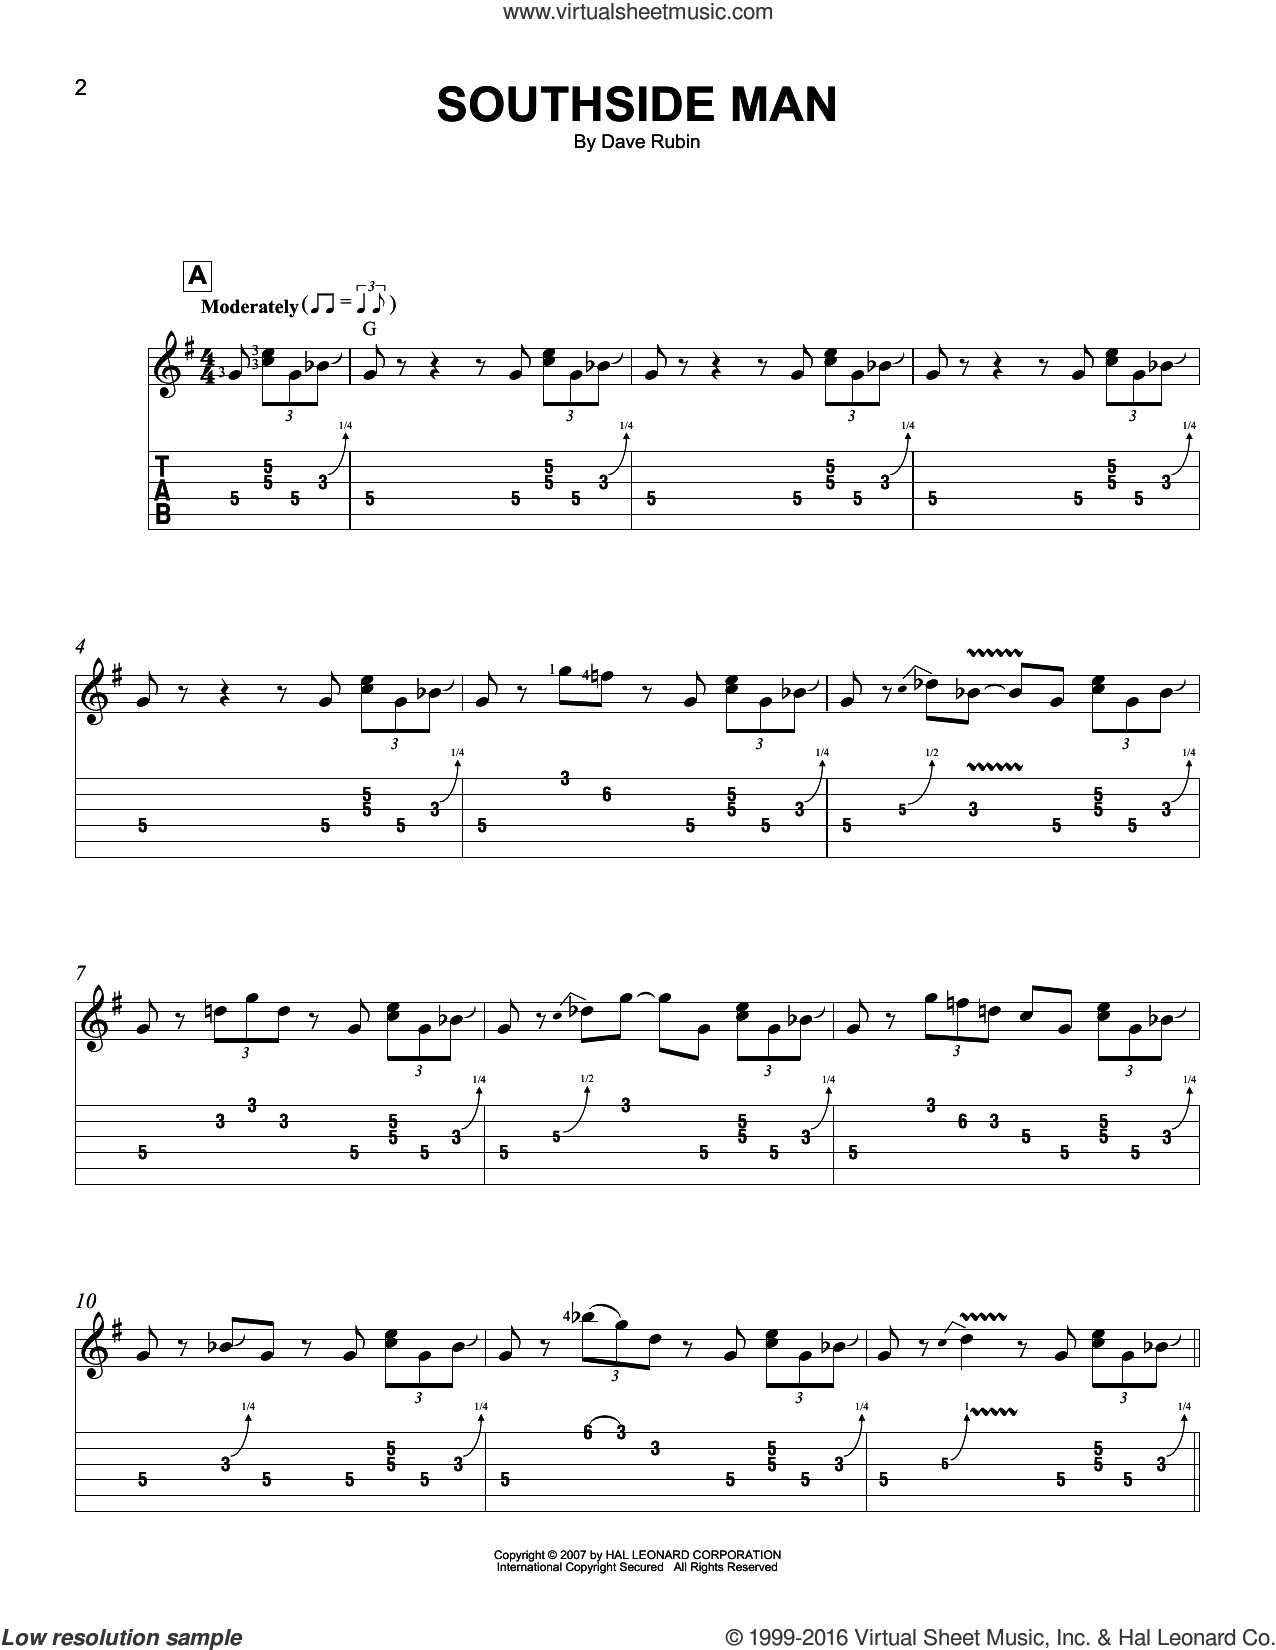 Southside Man sheet music for guitar solo (easy tablature) by Dave Rubin. Score Image Preview.